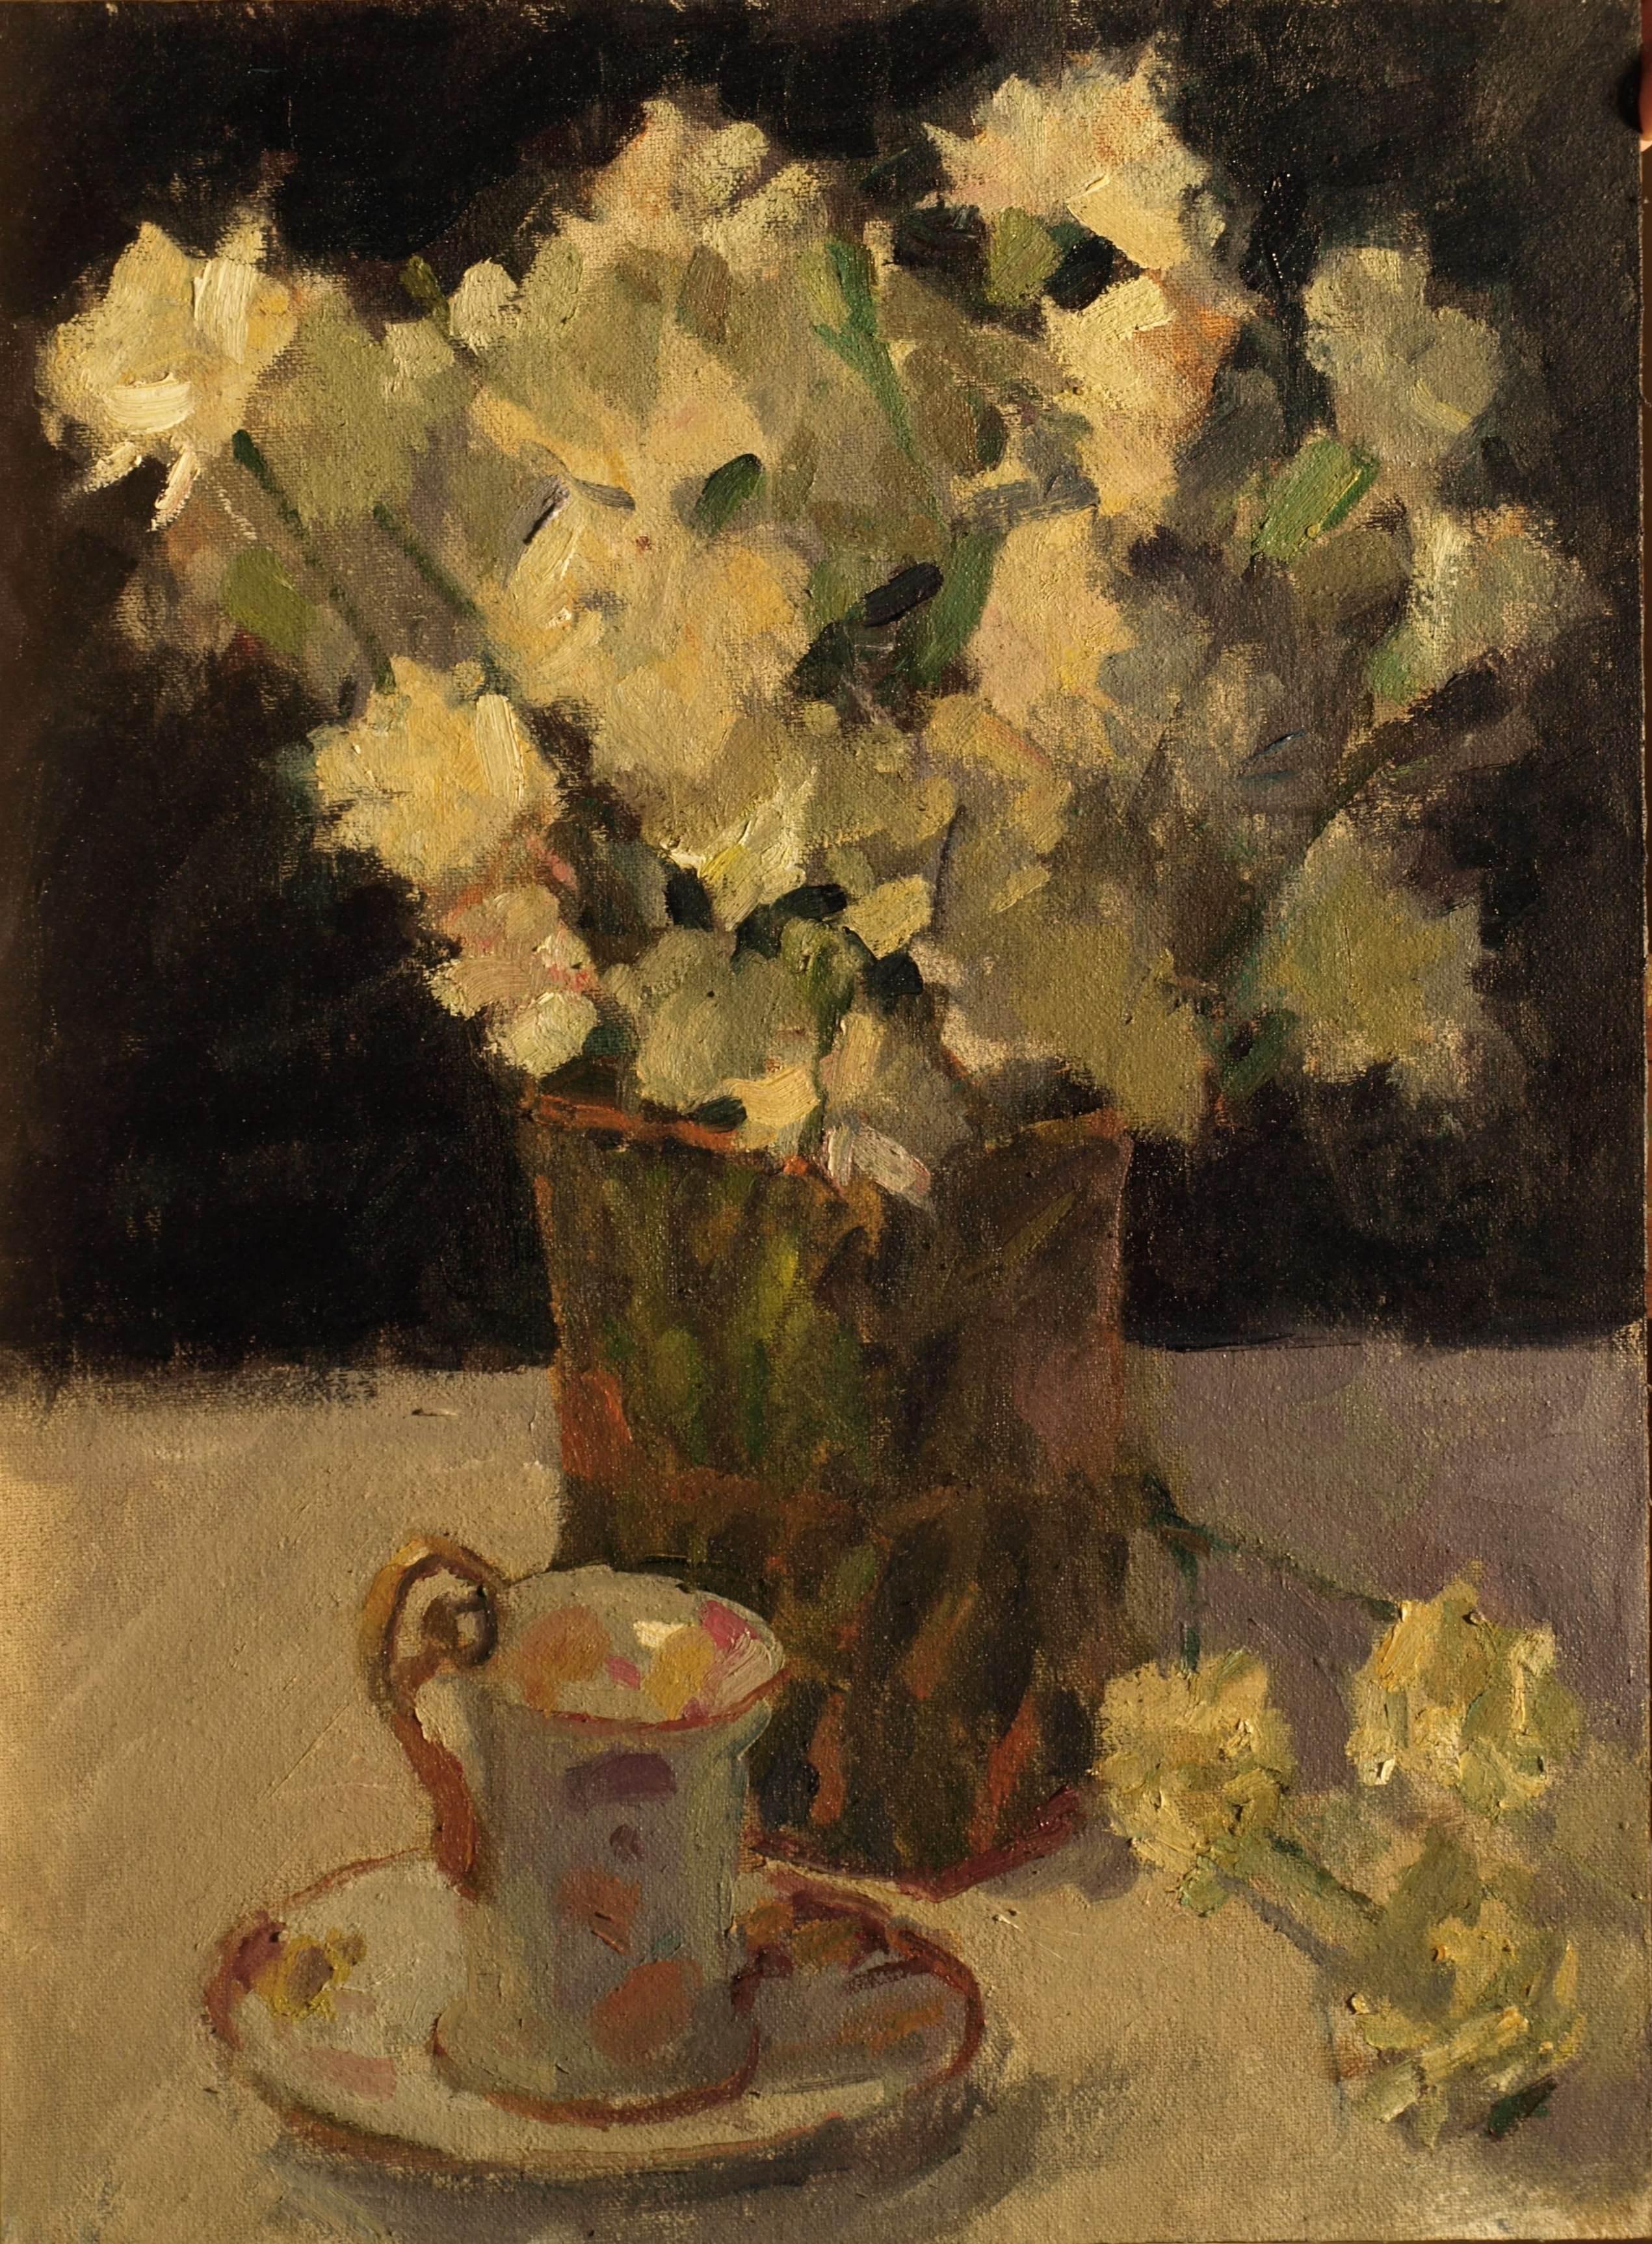 Carnations and Teacup, Oil on Canvas on Panel, 16 x 12 Inches, by Susan Grisell, $300